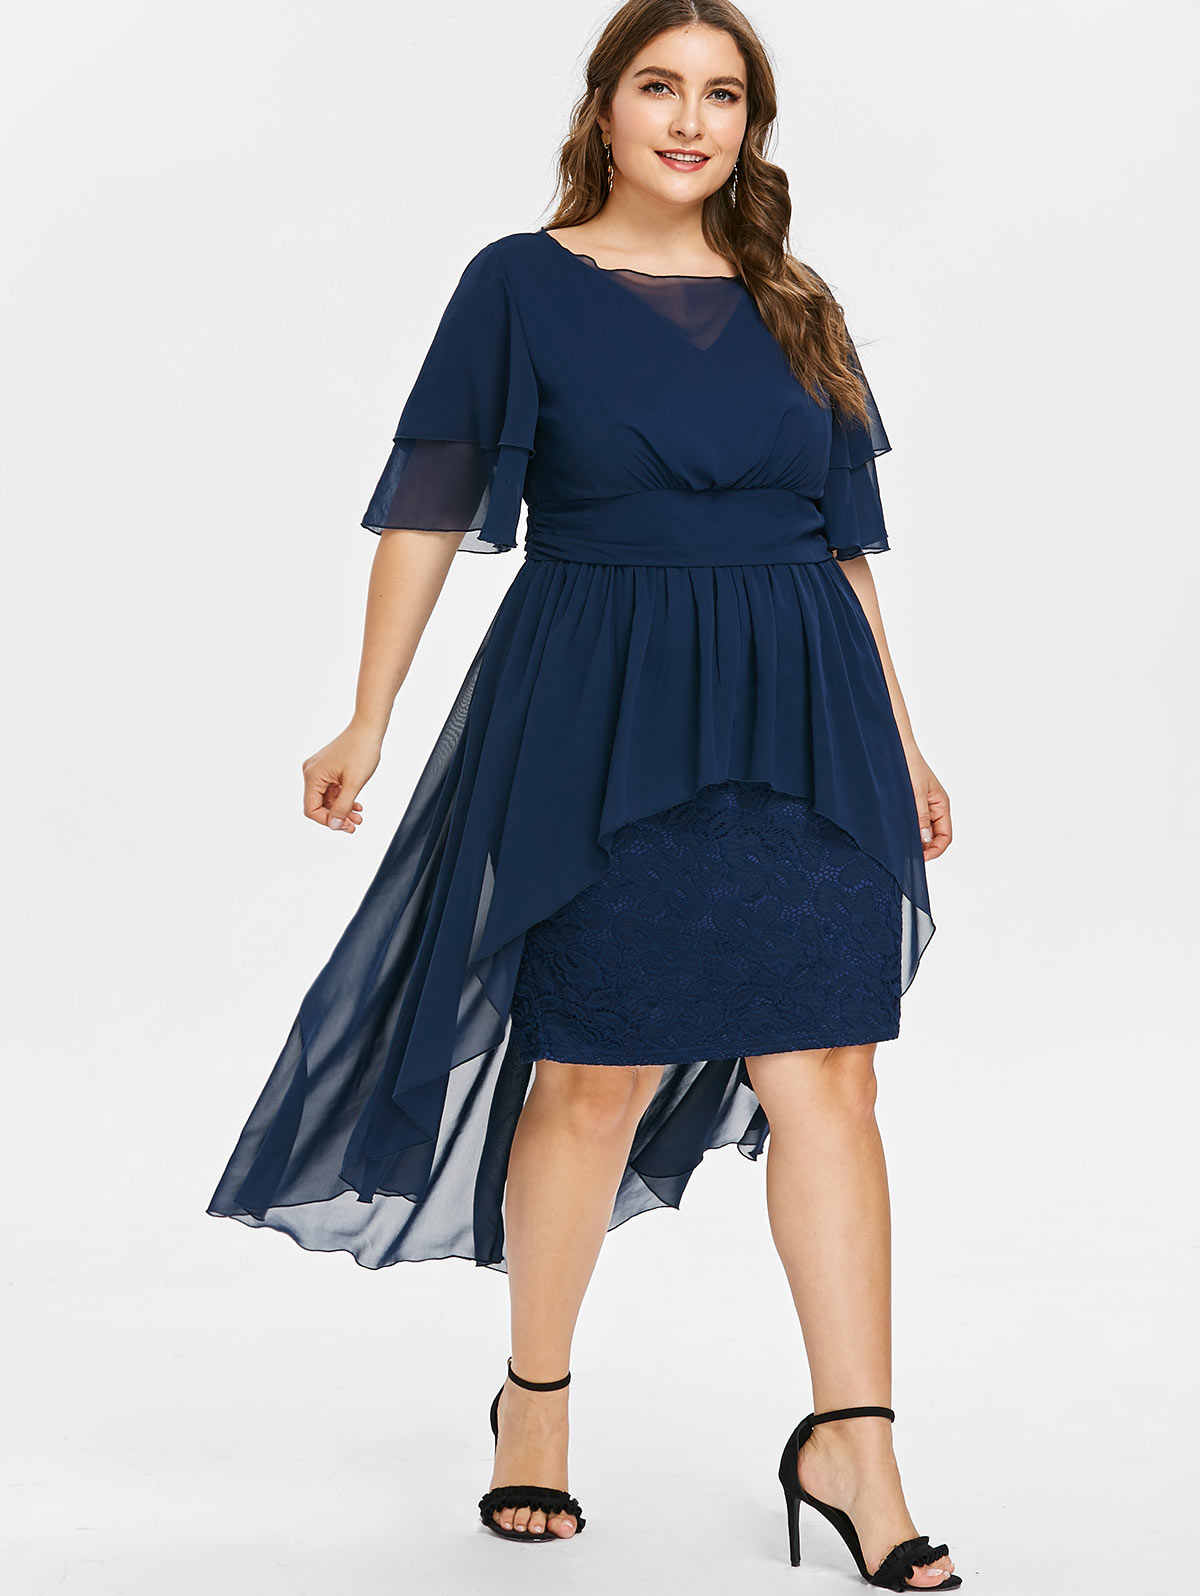 bcd404491a Wipalo Women Tied Belted Plus Size Lace Knee Length Dress Solid V ...